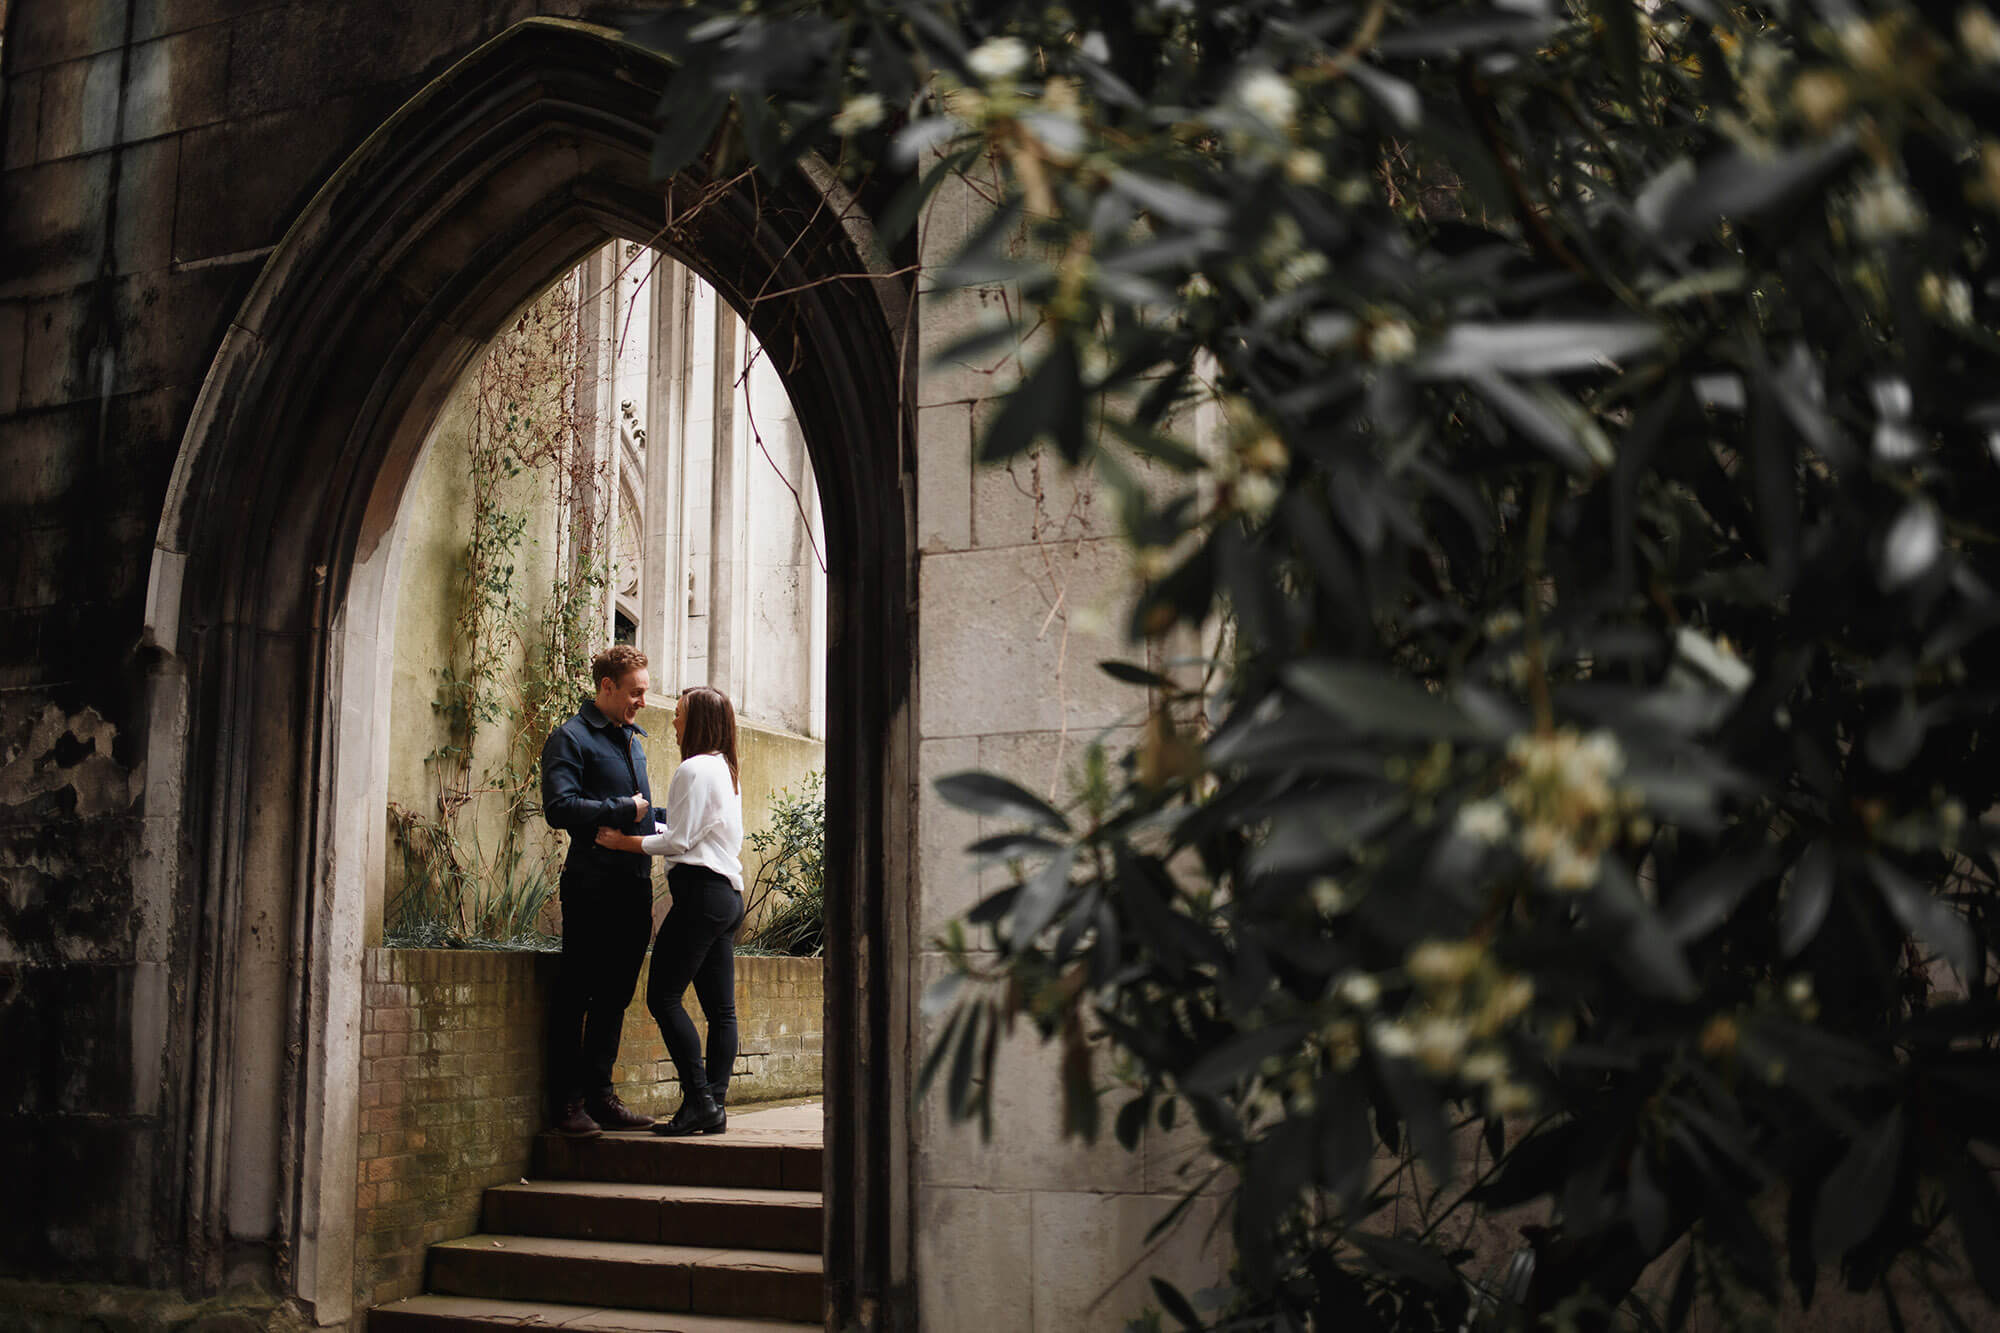 couple standing in London archway